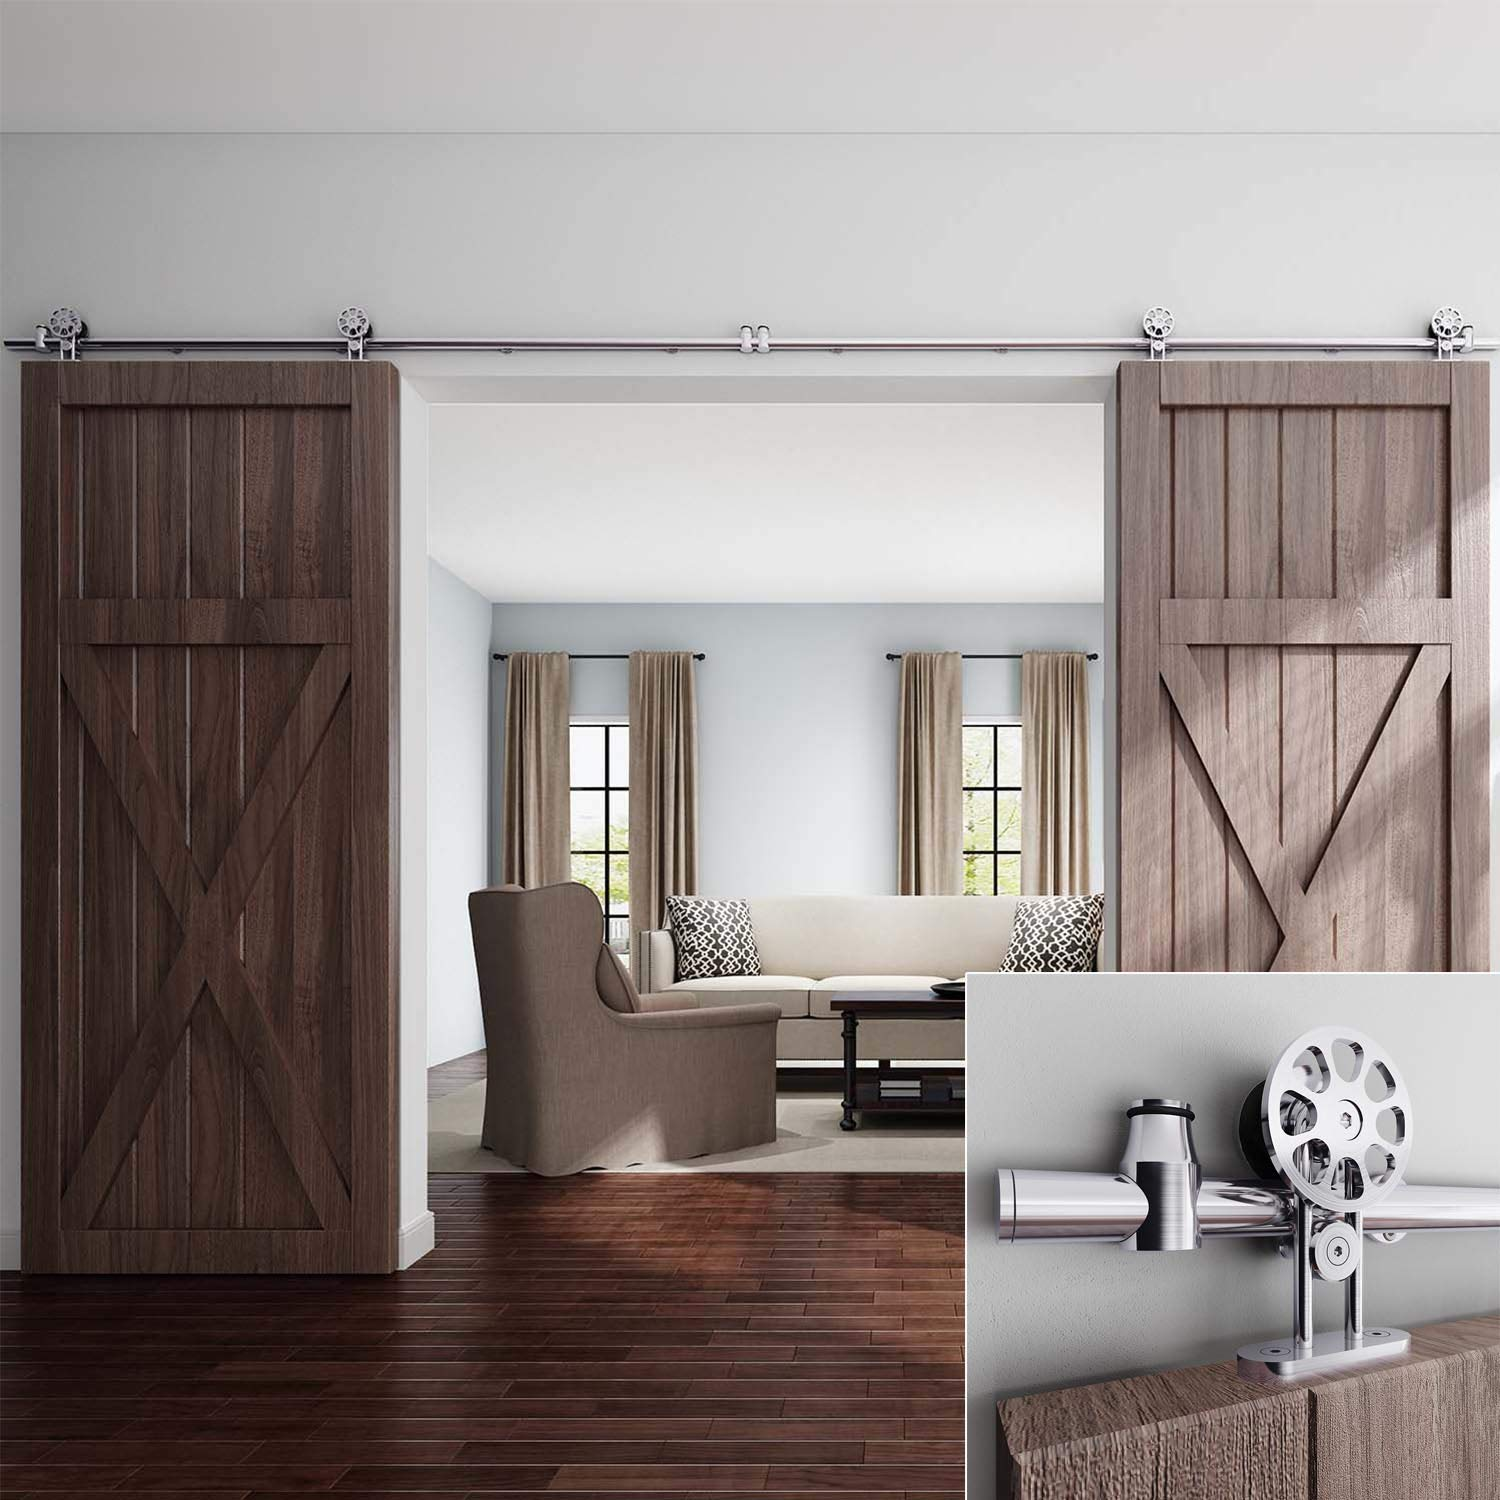 EaseLife 12 FT Double Door Top Mount Modern Sliding Door Hardware Track Kit | Stainless Steel | Anti-Rust| Slide Smooth Quiet | Easy Install | Fit Two 30''~36'' Wide Door | 12FT Track Double Door Kit